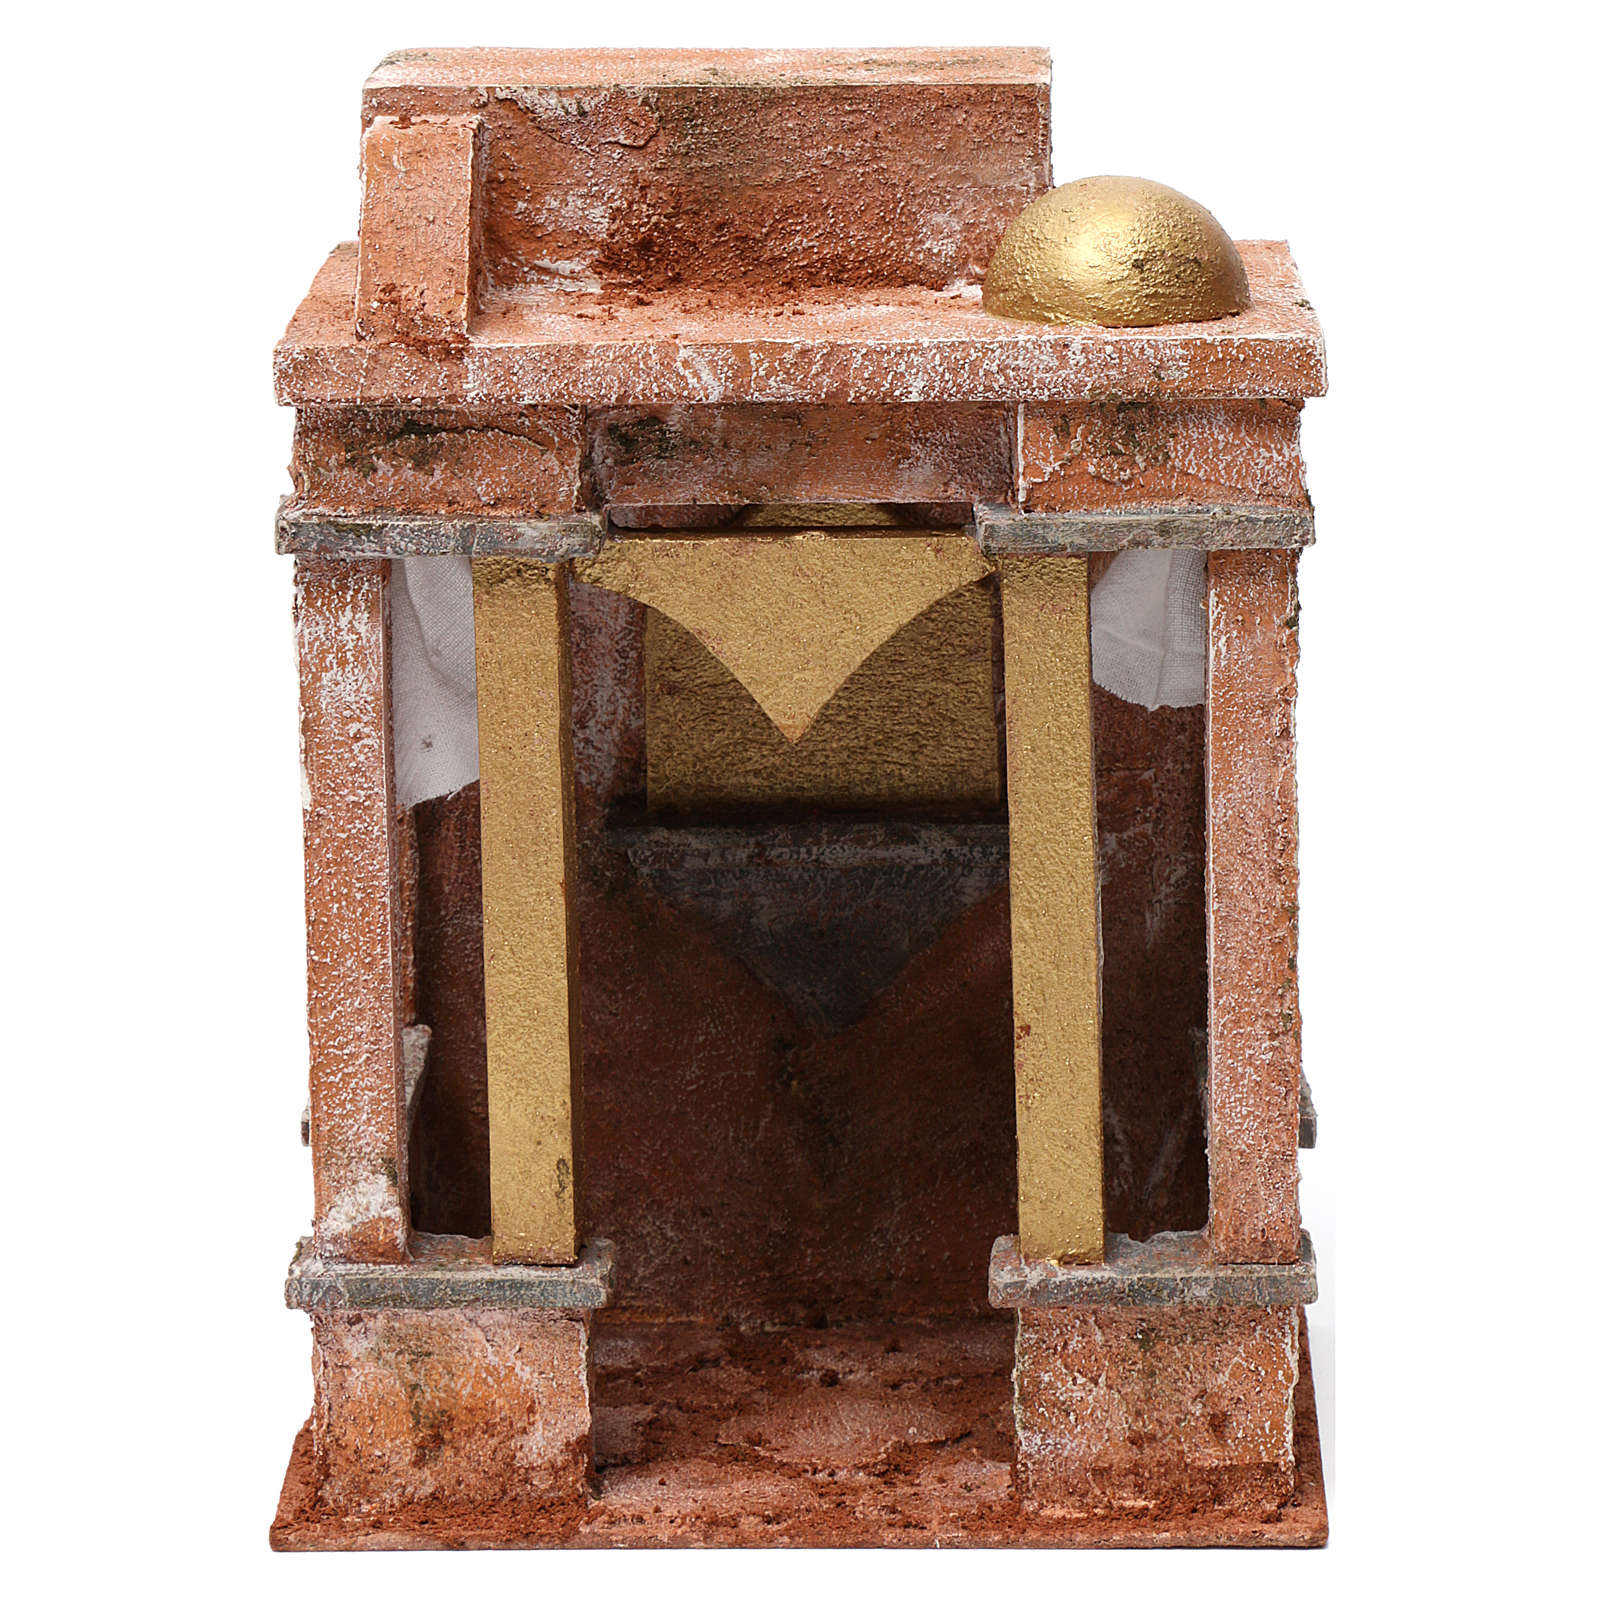 Arab setting with dome, curtains and pillars for 10 cm nativity scene 4